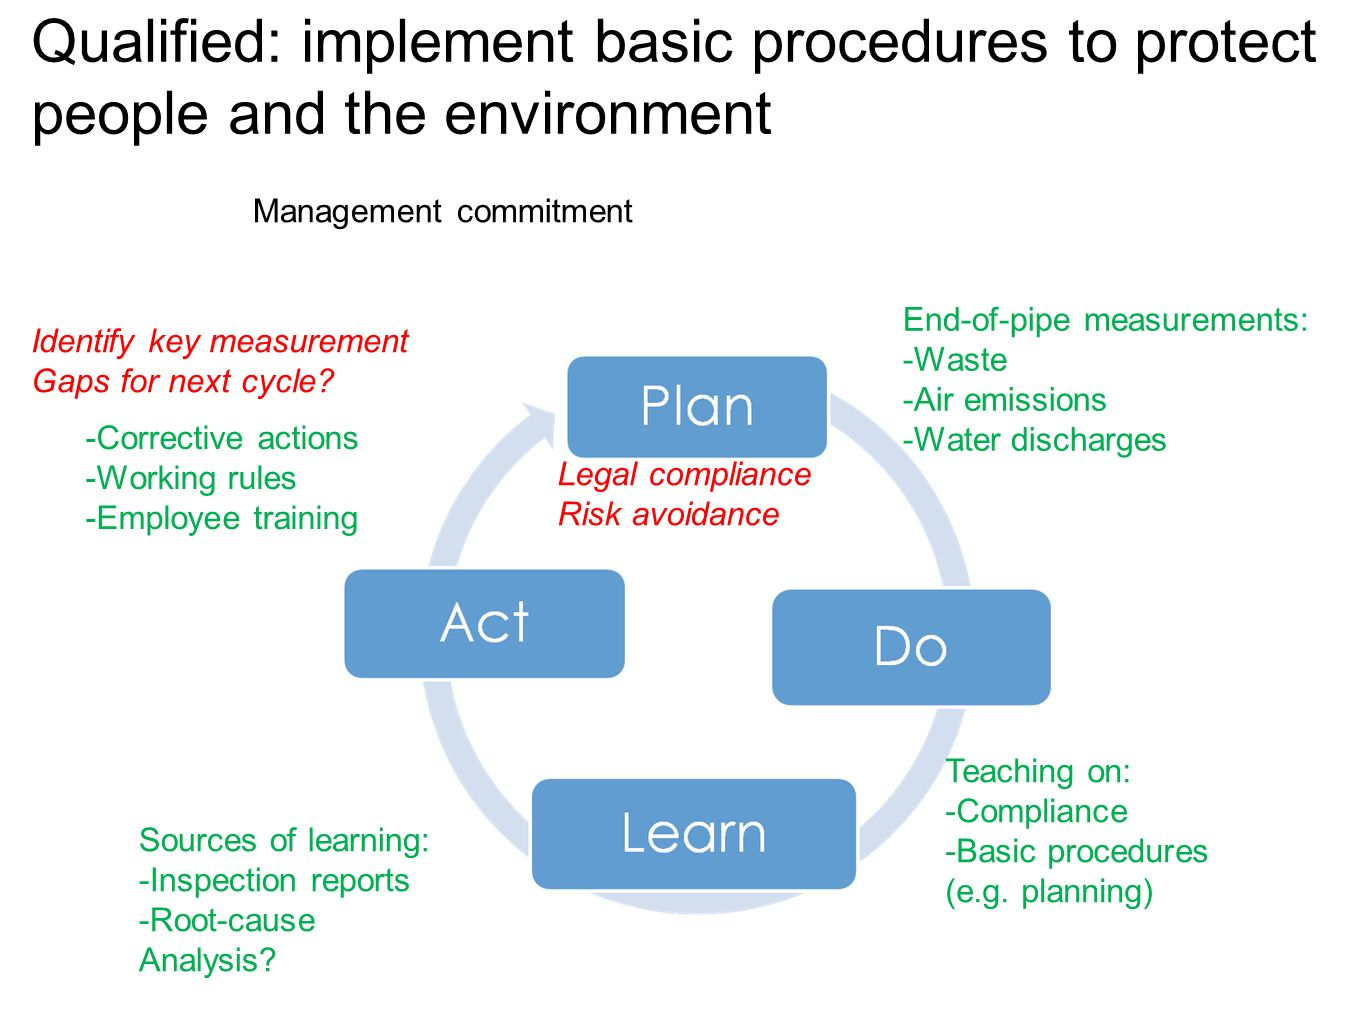 Qualified: implement basic procedures to protect people and the environment